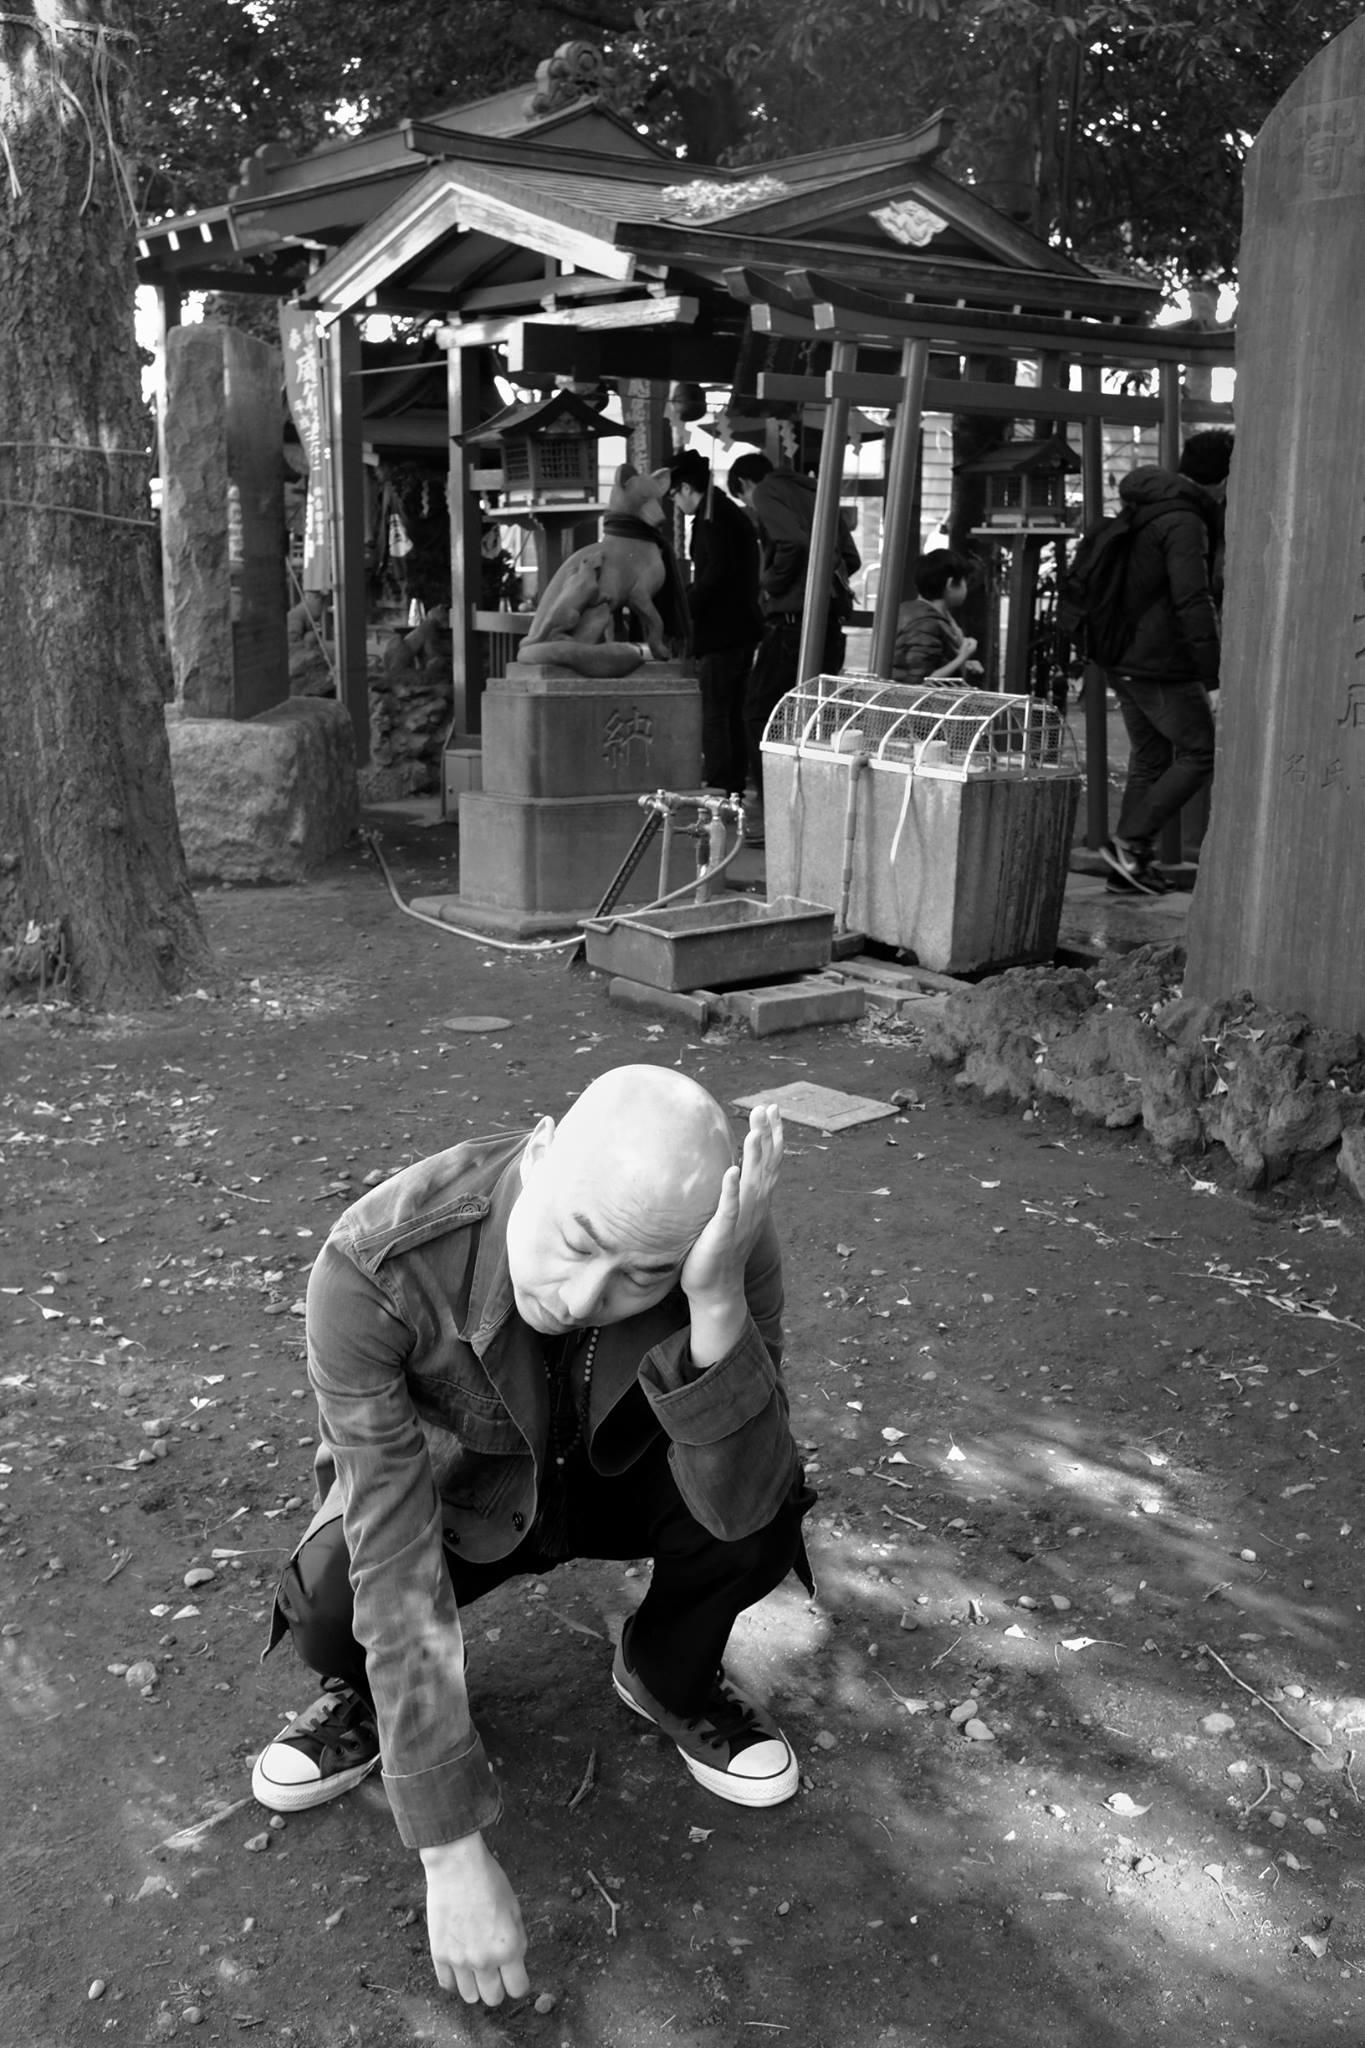 Michael squats next to a Japanese shrine resting his head on his hand in a somewhat distraught emotion.